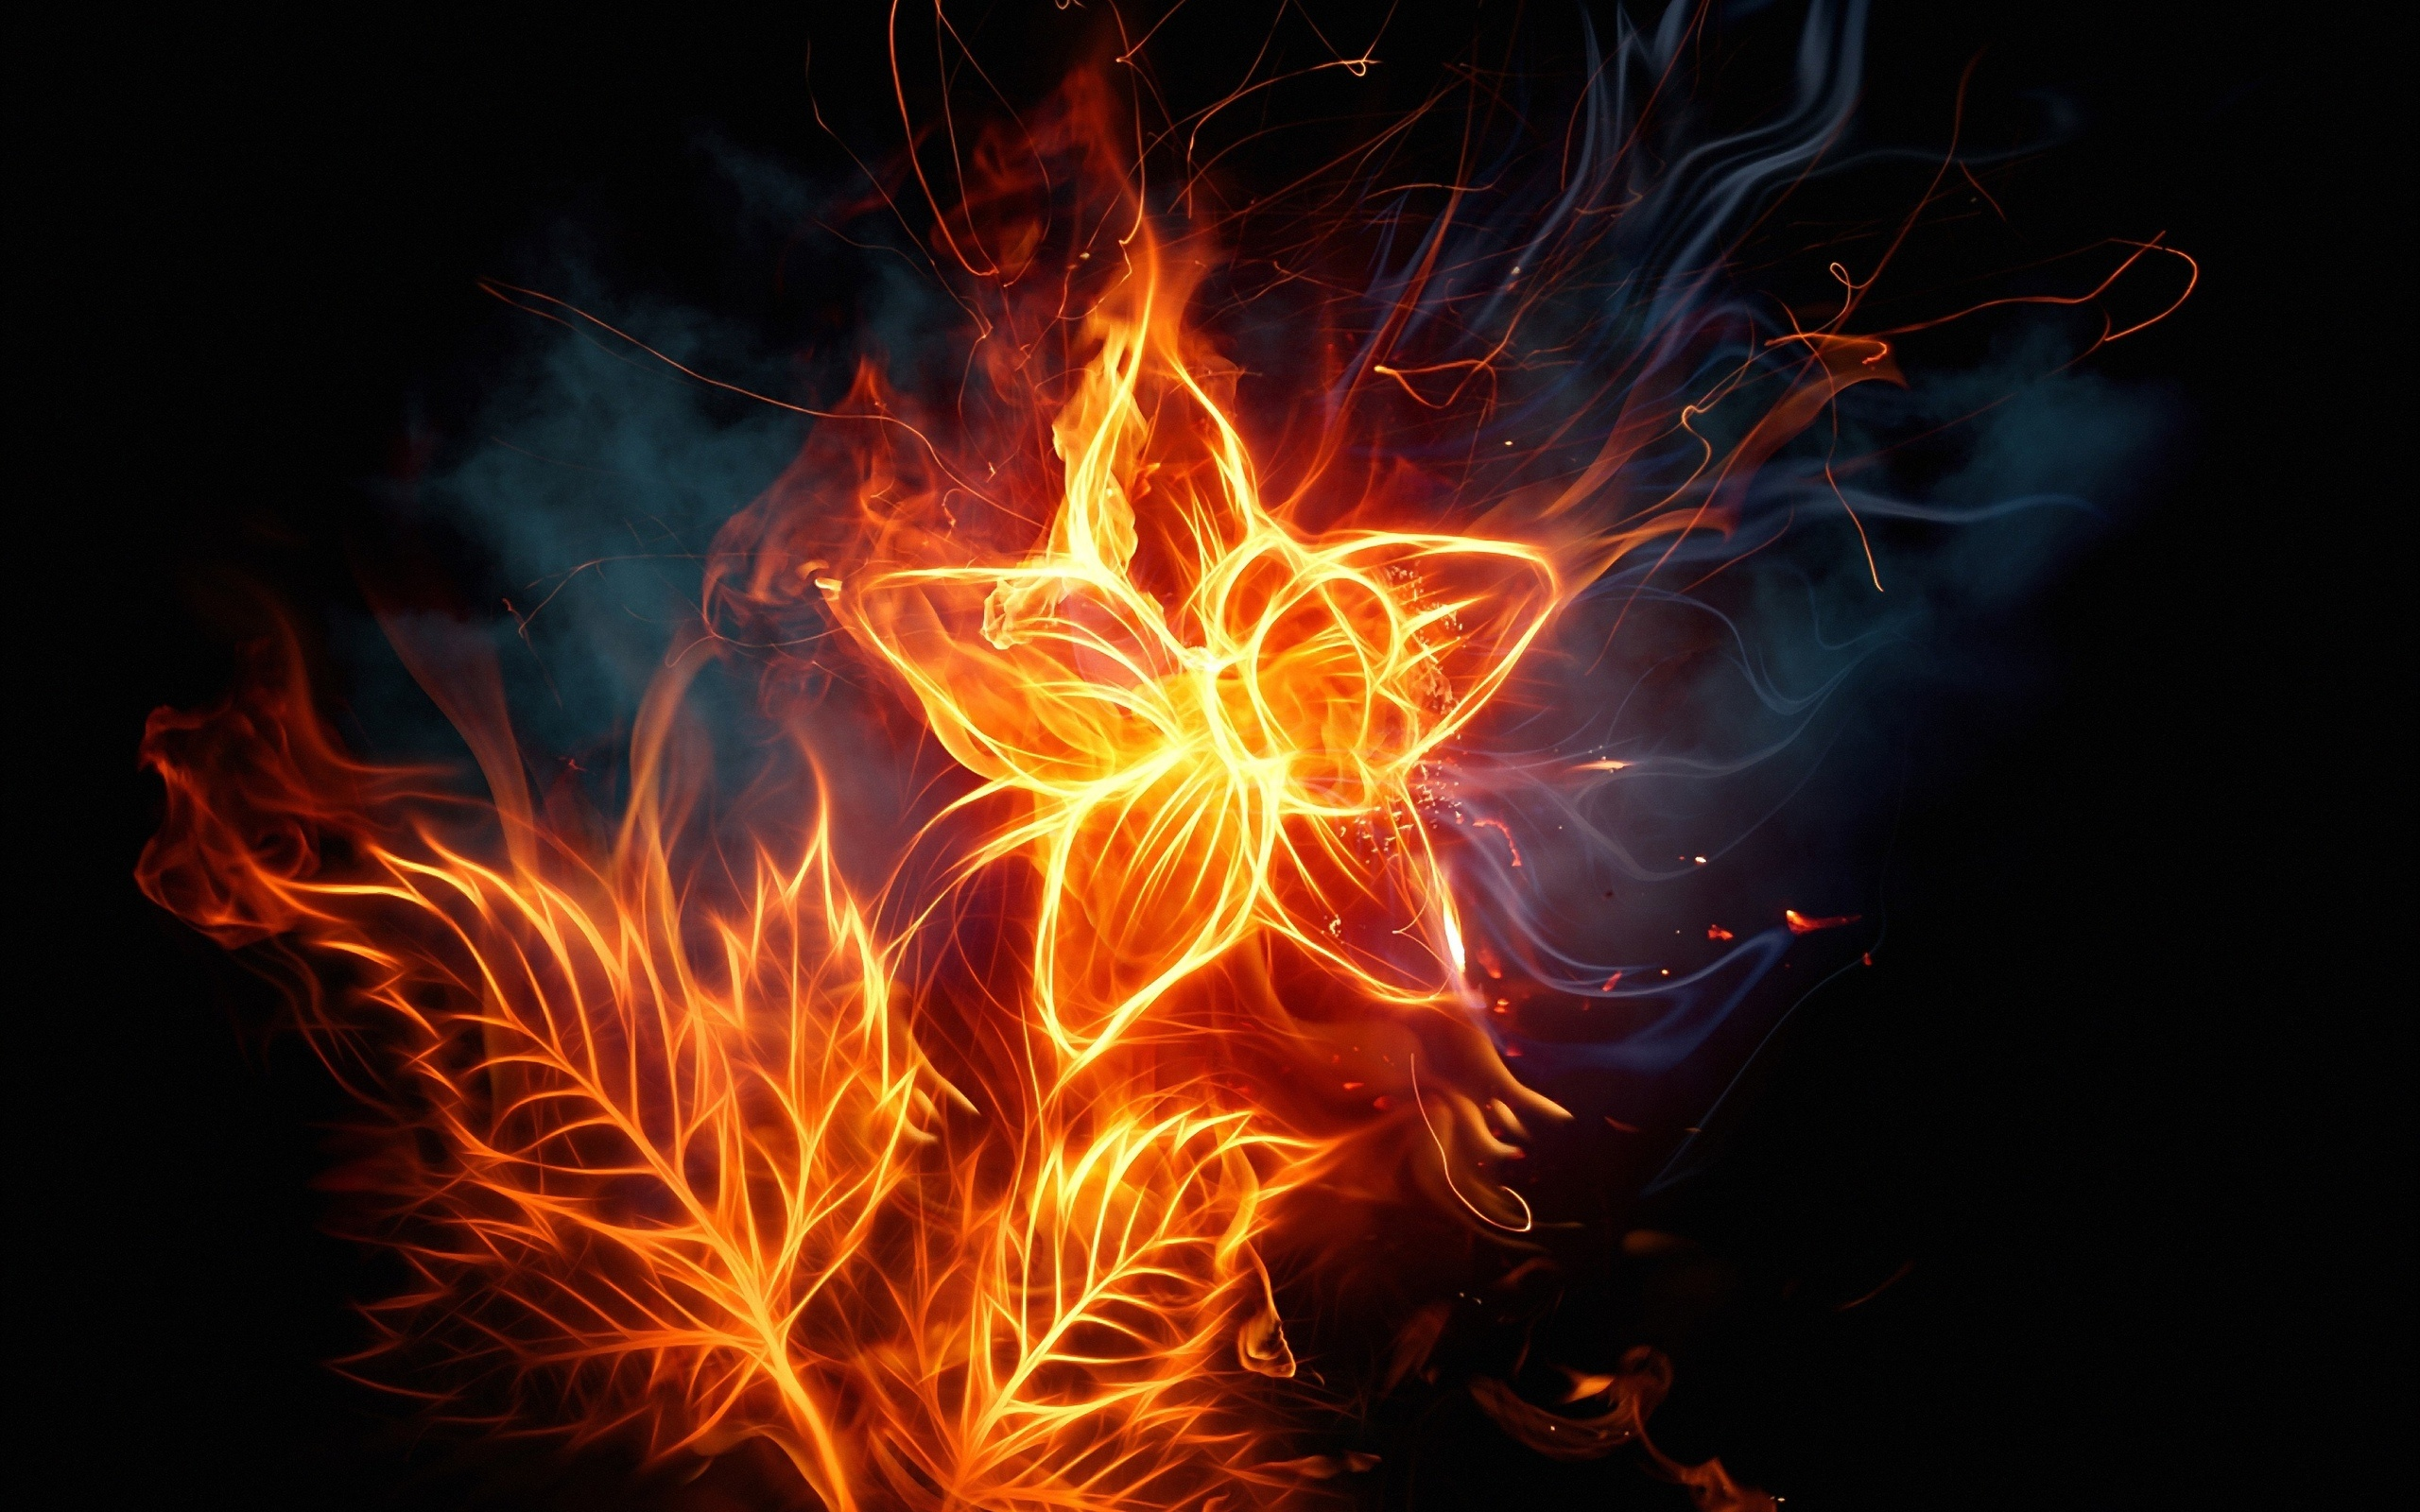 leaves on fire wallpapers55com   Best Wallpapers for PCs Laptops 2560x1600